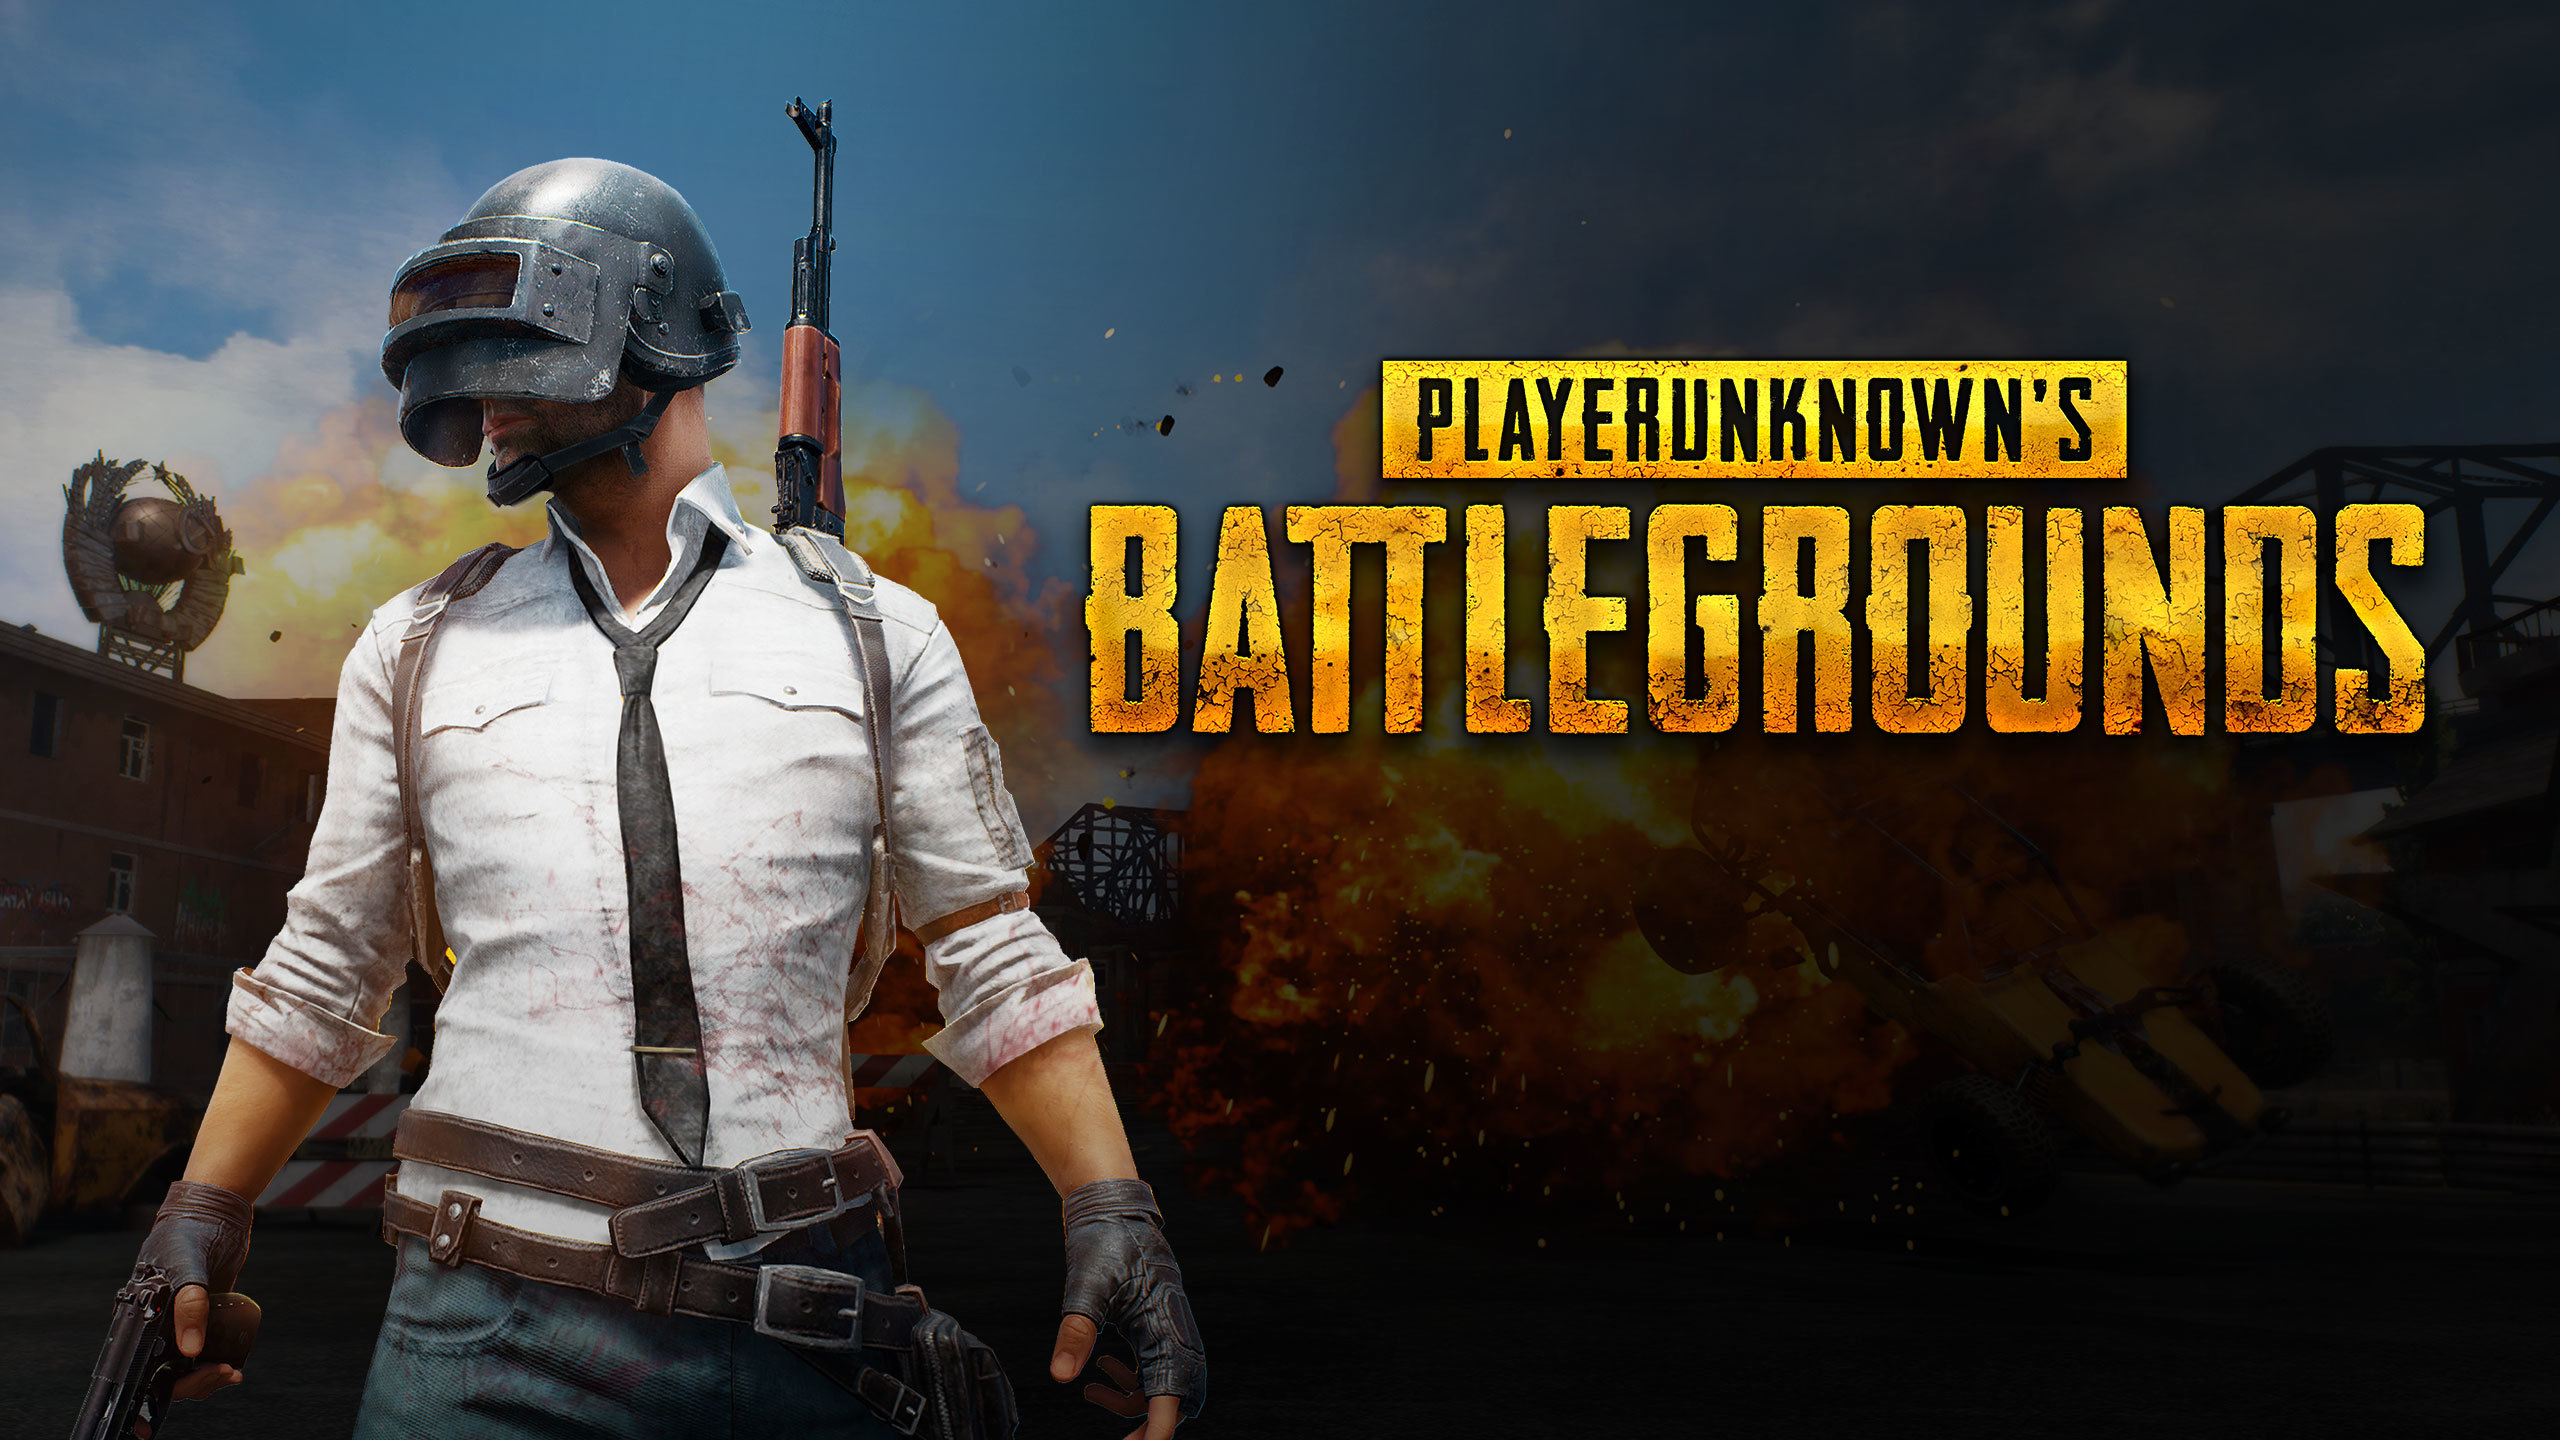 PUBG briefly surpassed Dota 2 in concurrent players becoming the most-played game on Steam